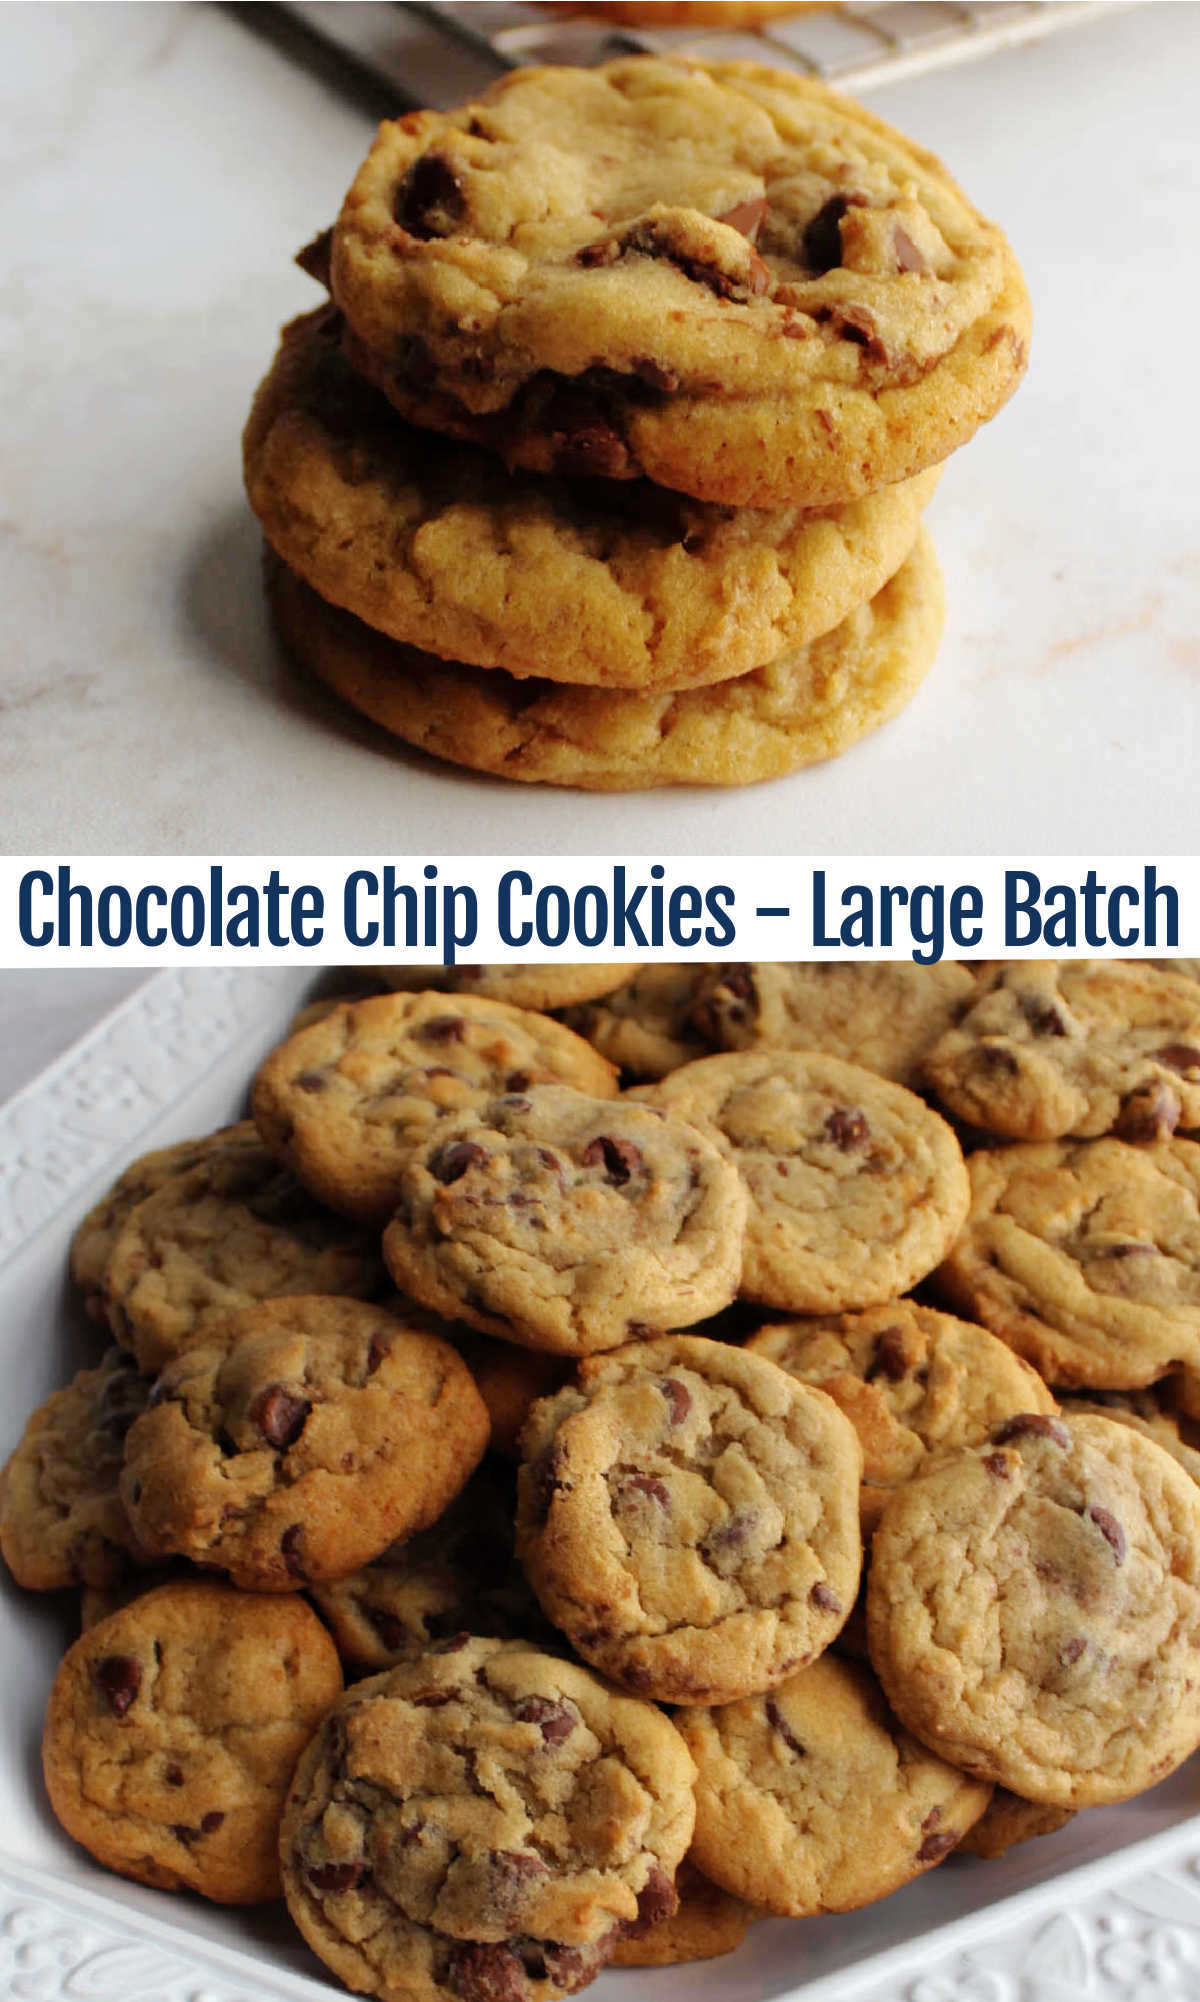 These cookies were a fun welcome to the neighborhood treat that came with an even more fun story. They quickly worked their way into our hearts as among the best chocolate chip cookies we've had!